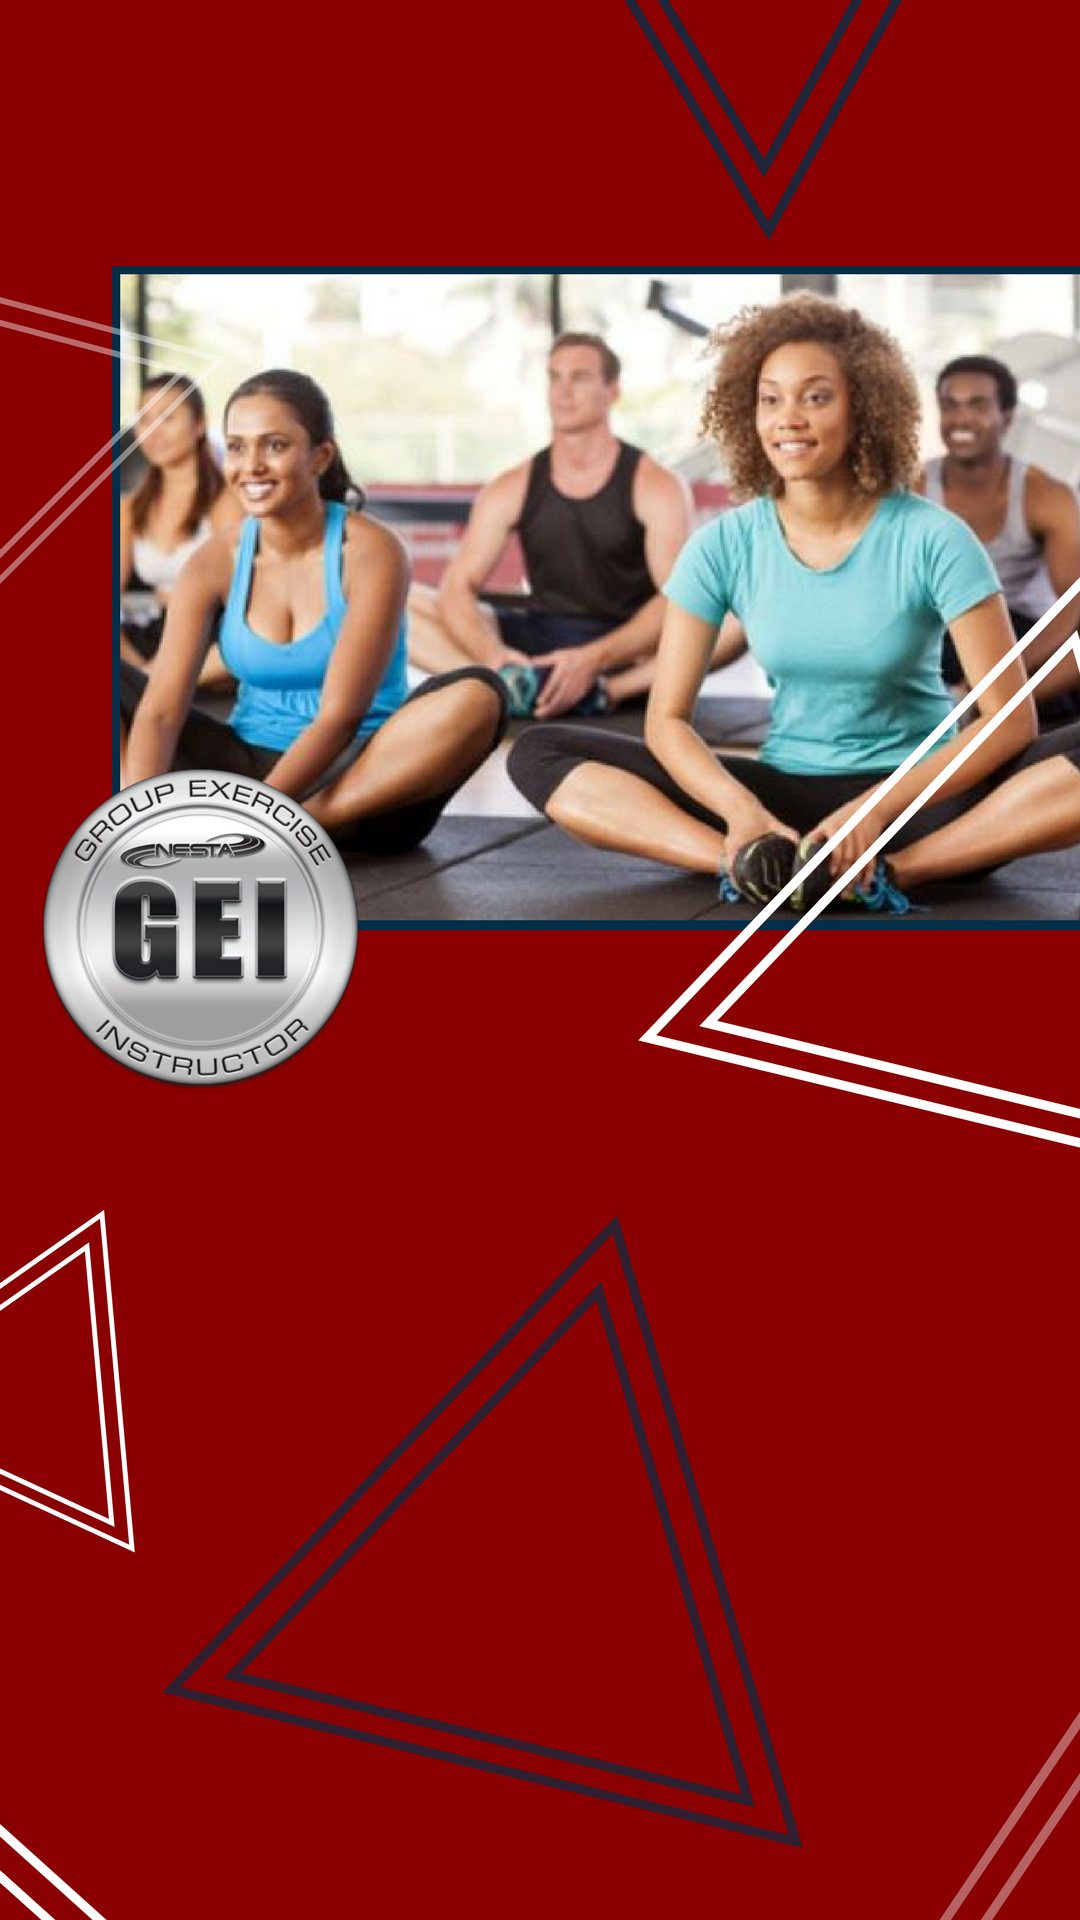 Group Exercise Instructor Certification Group Fitness Exercises